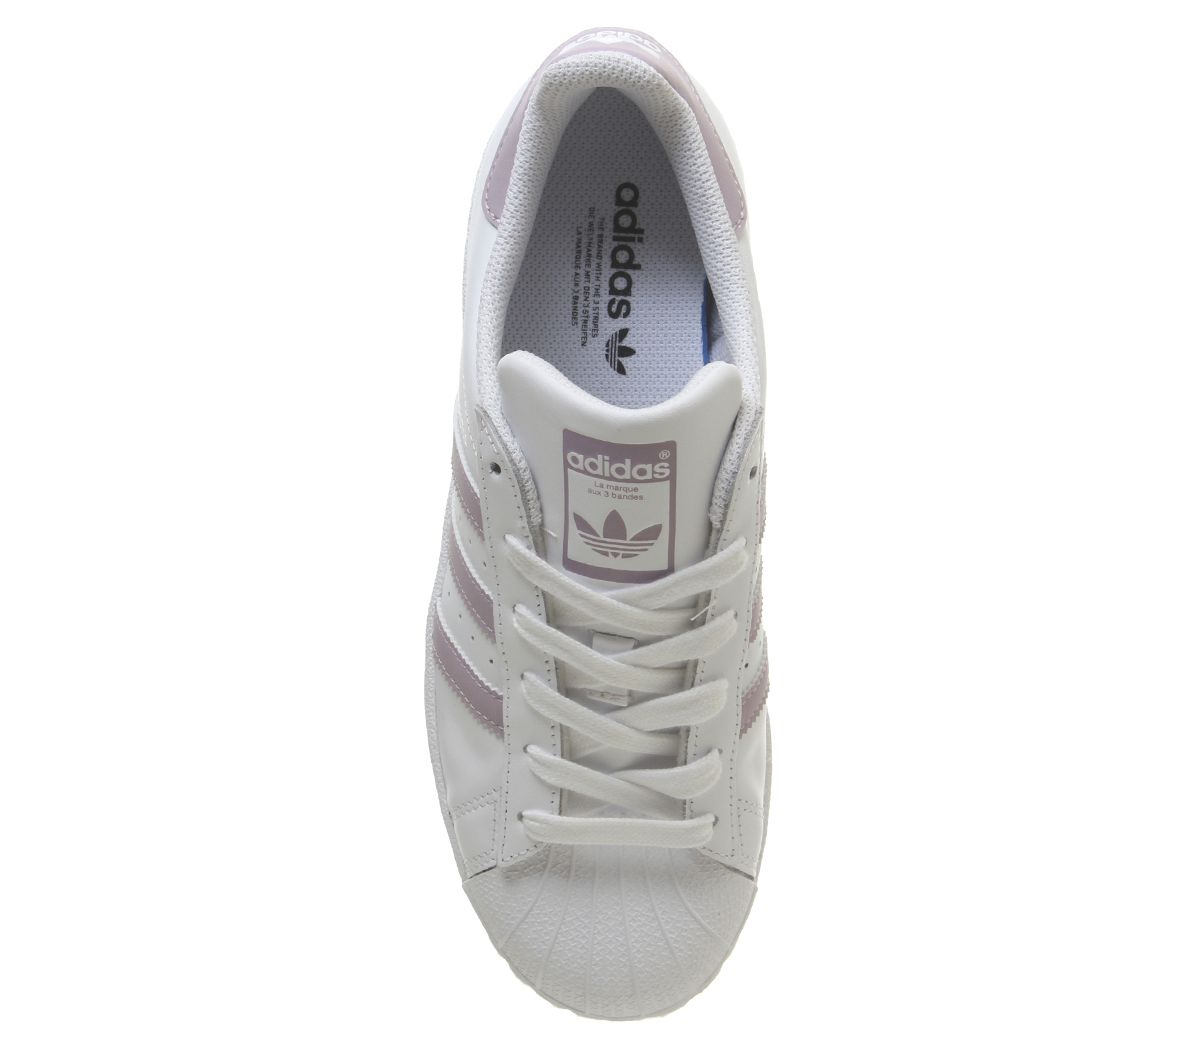 huge selection of a4fd8 cee39 Femmes-Adidas-Superstar-1-Chaussures-Blanches-Souple-Vision-